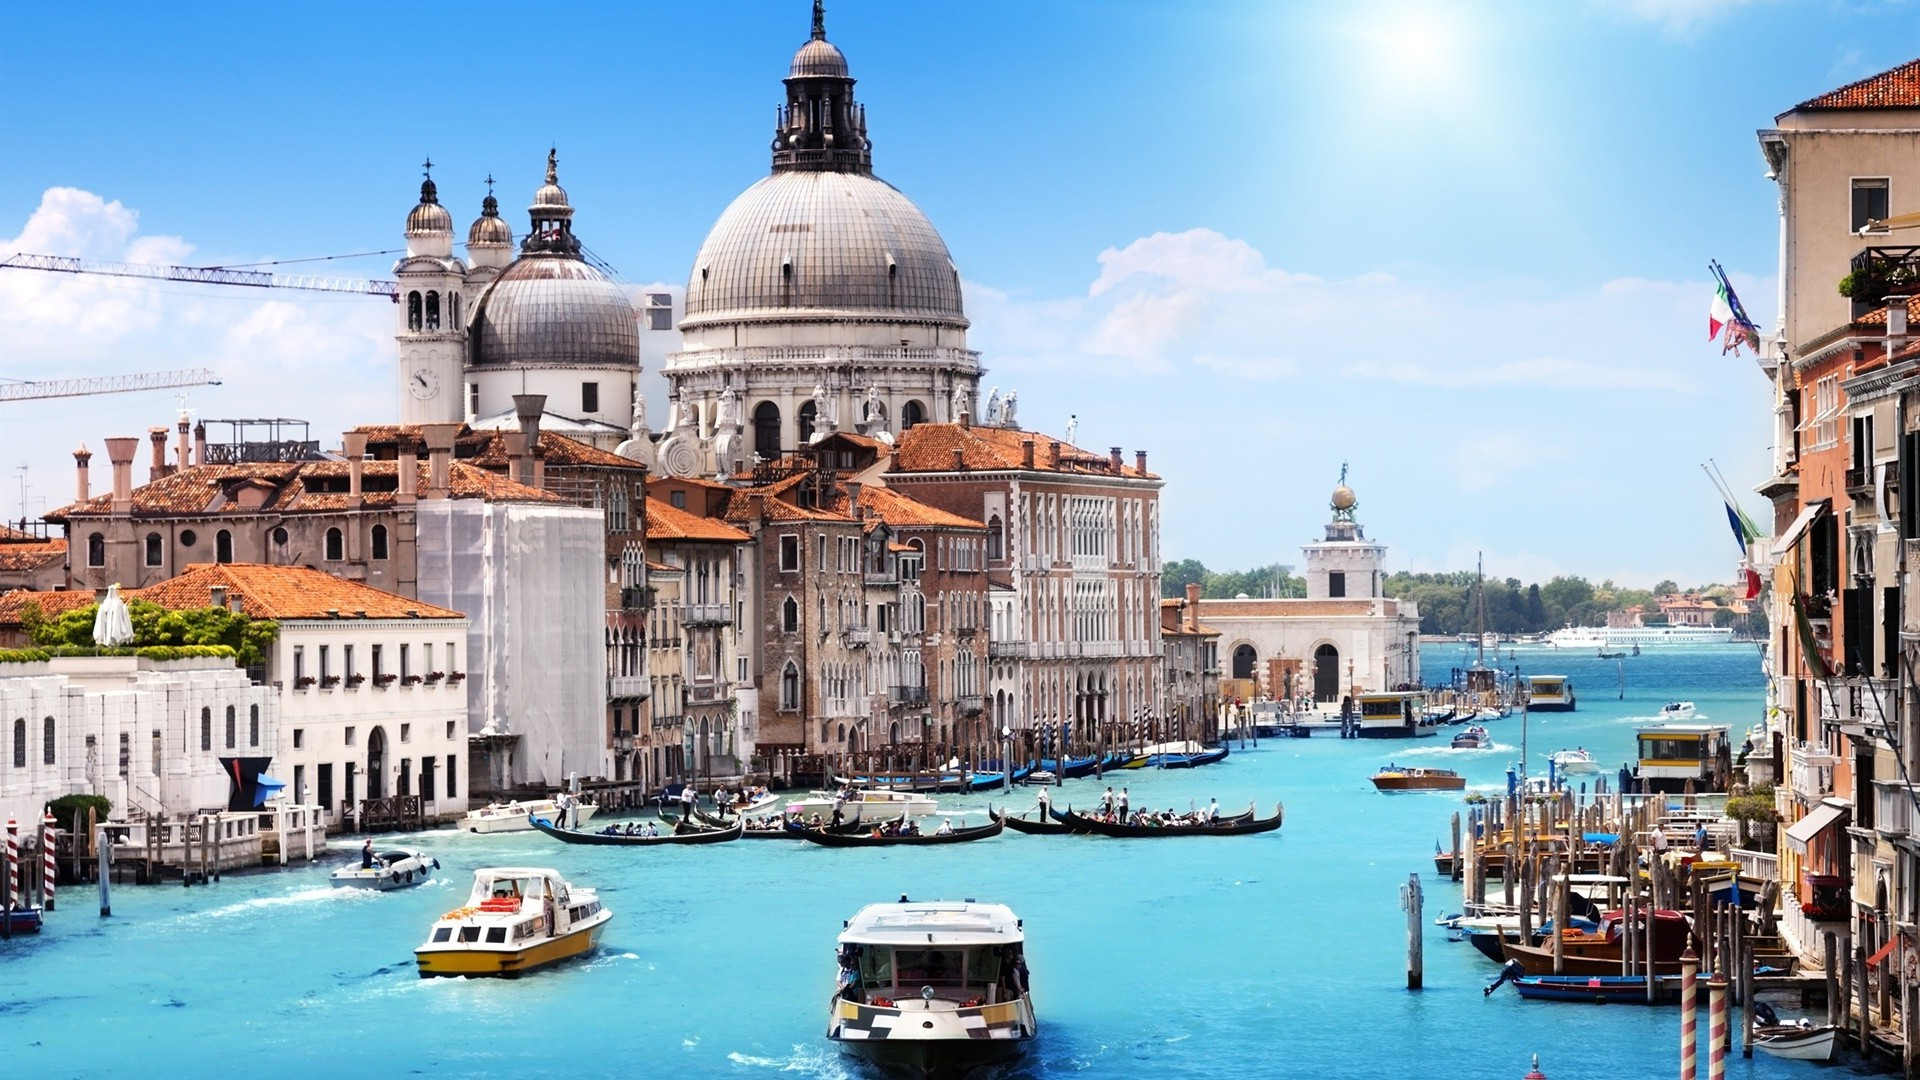 city travel architecture water tourism sea boat building watercraft gondola cityscape venetian sky town landmark canal outdoors church vacation